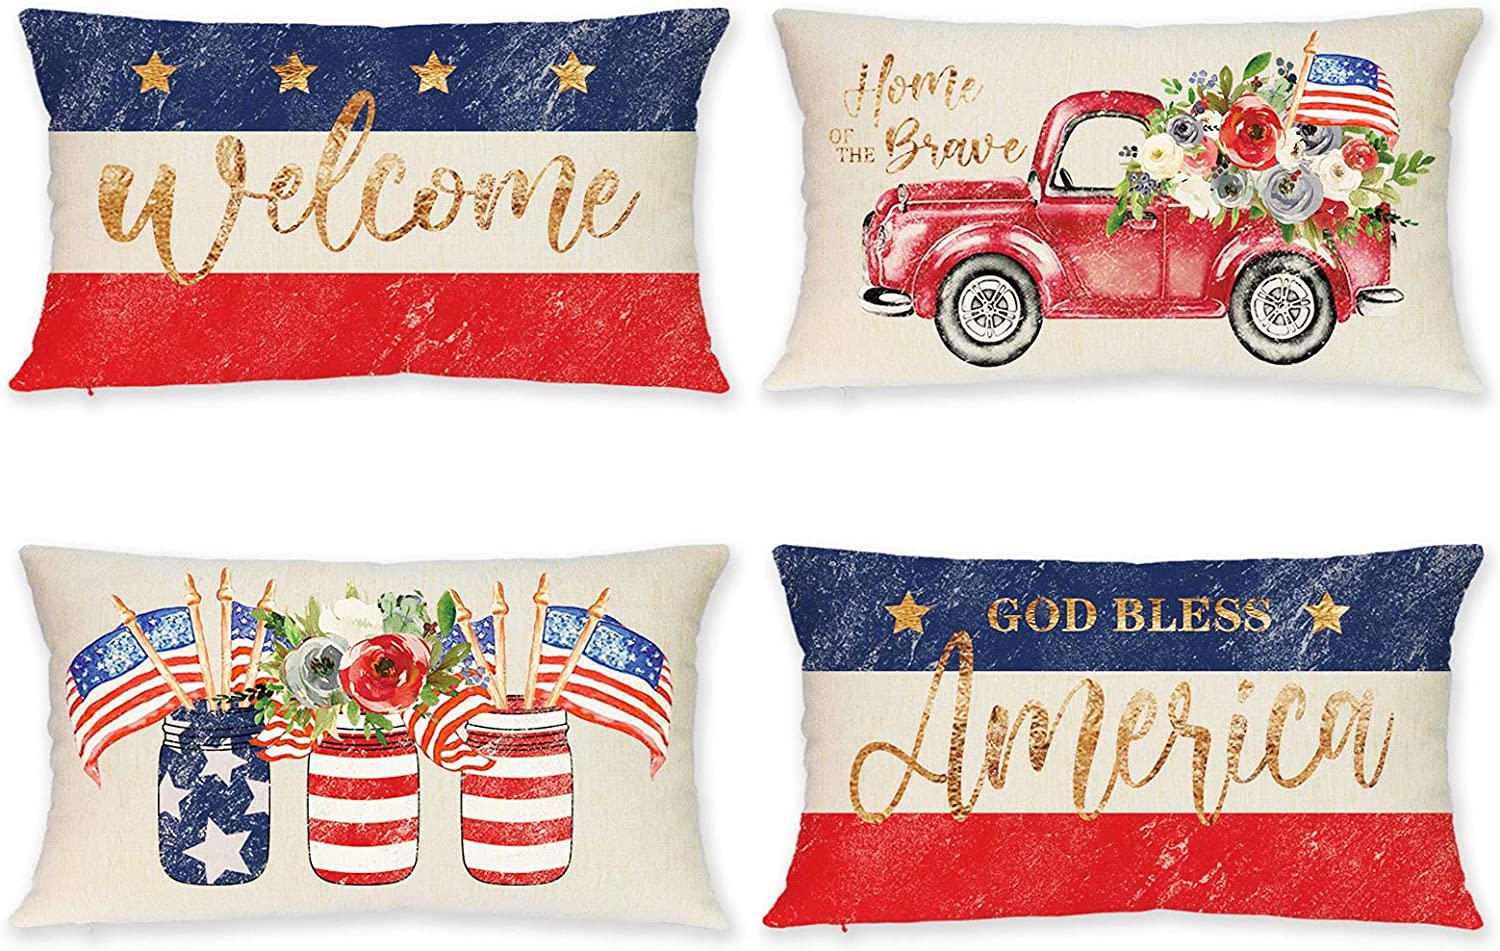 Patriotic Pillow Cover 12 X 20 Inch, Set of 4 Lumbar 4th of July Pillow Covers, Blue Red White Stripes & Stars American Flag Floral Truck Decorative Pillow Cases for Independence Day Home Decor